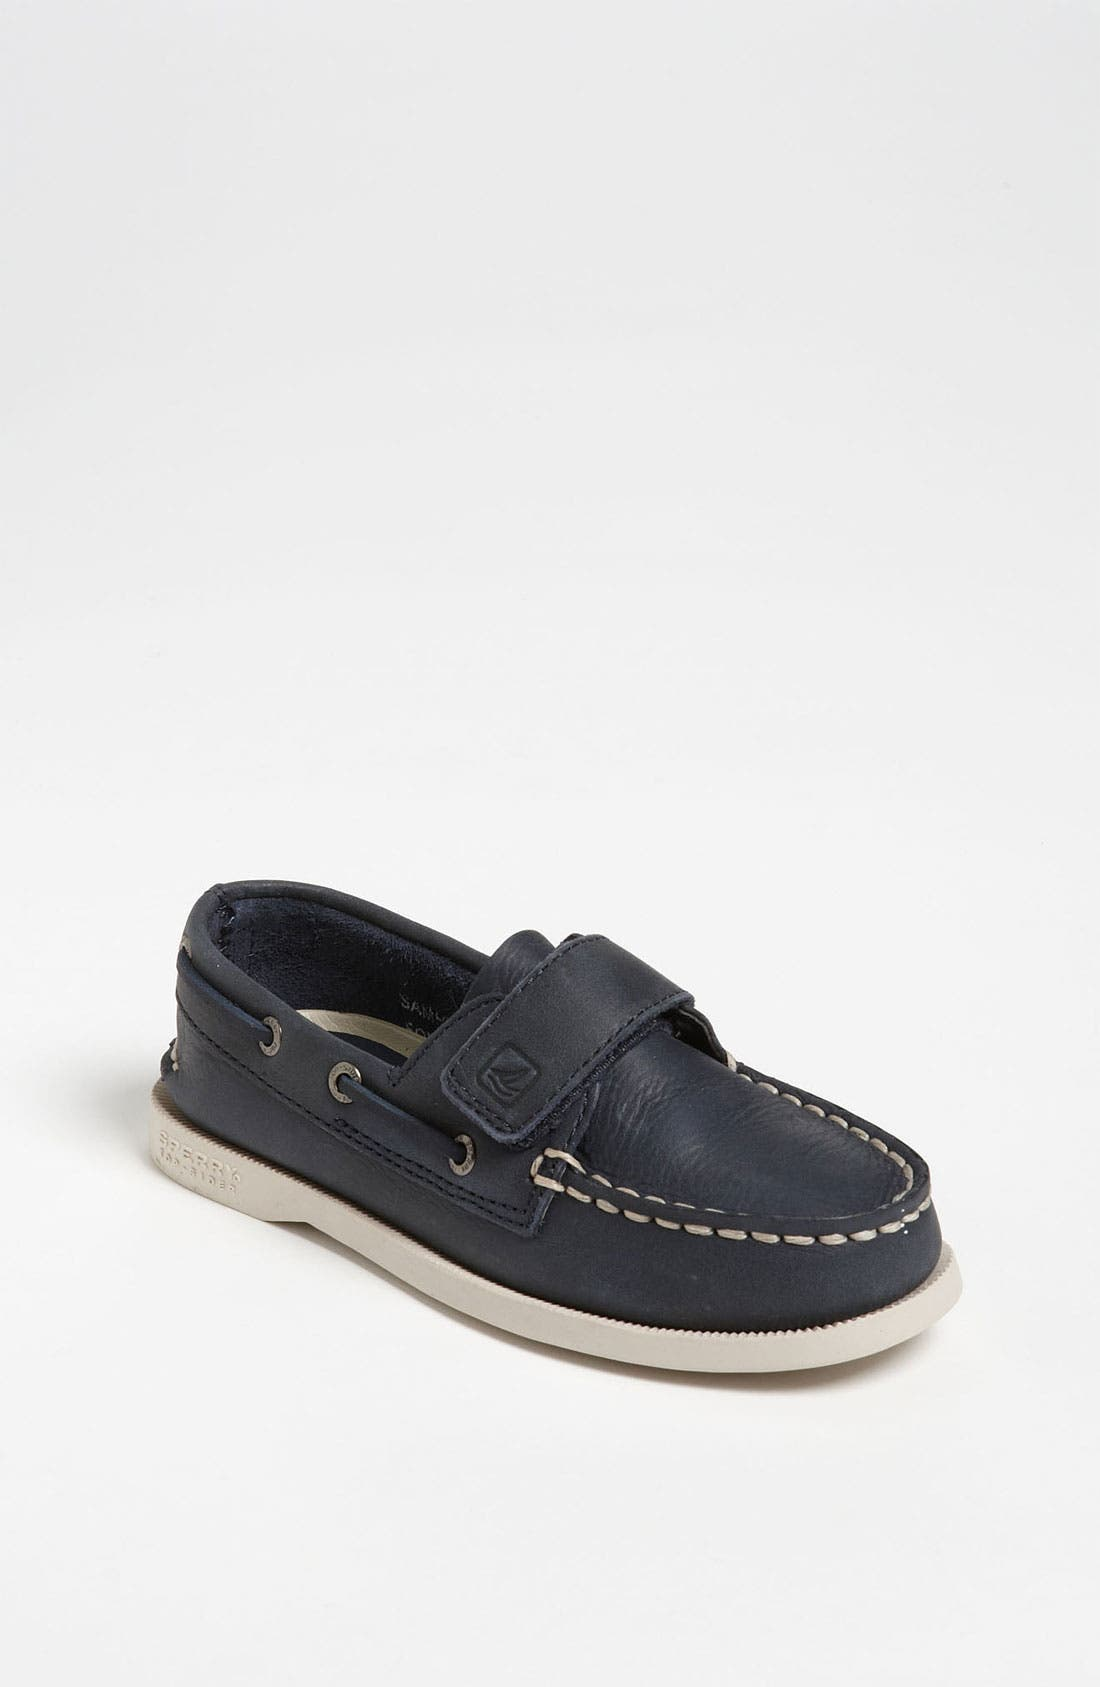 Main Image - Sperry Top-Sider® Kids 'Authentic Original' Boat Shoe (Walker, Toddler & Little Kid)